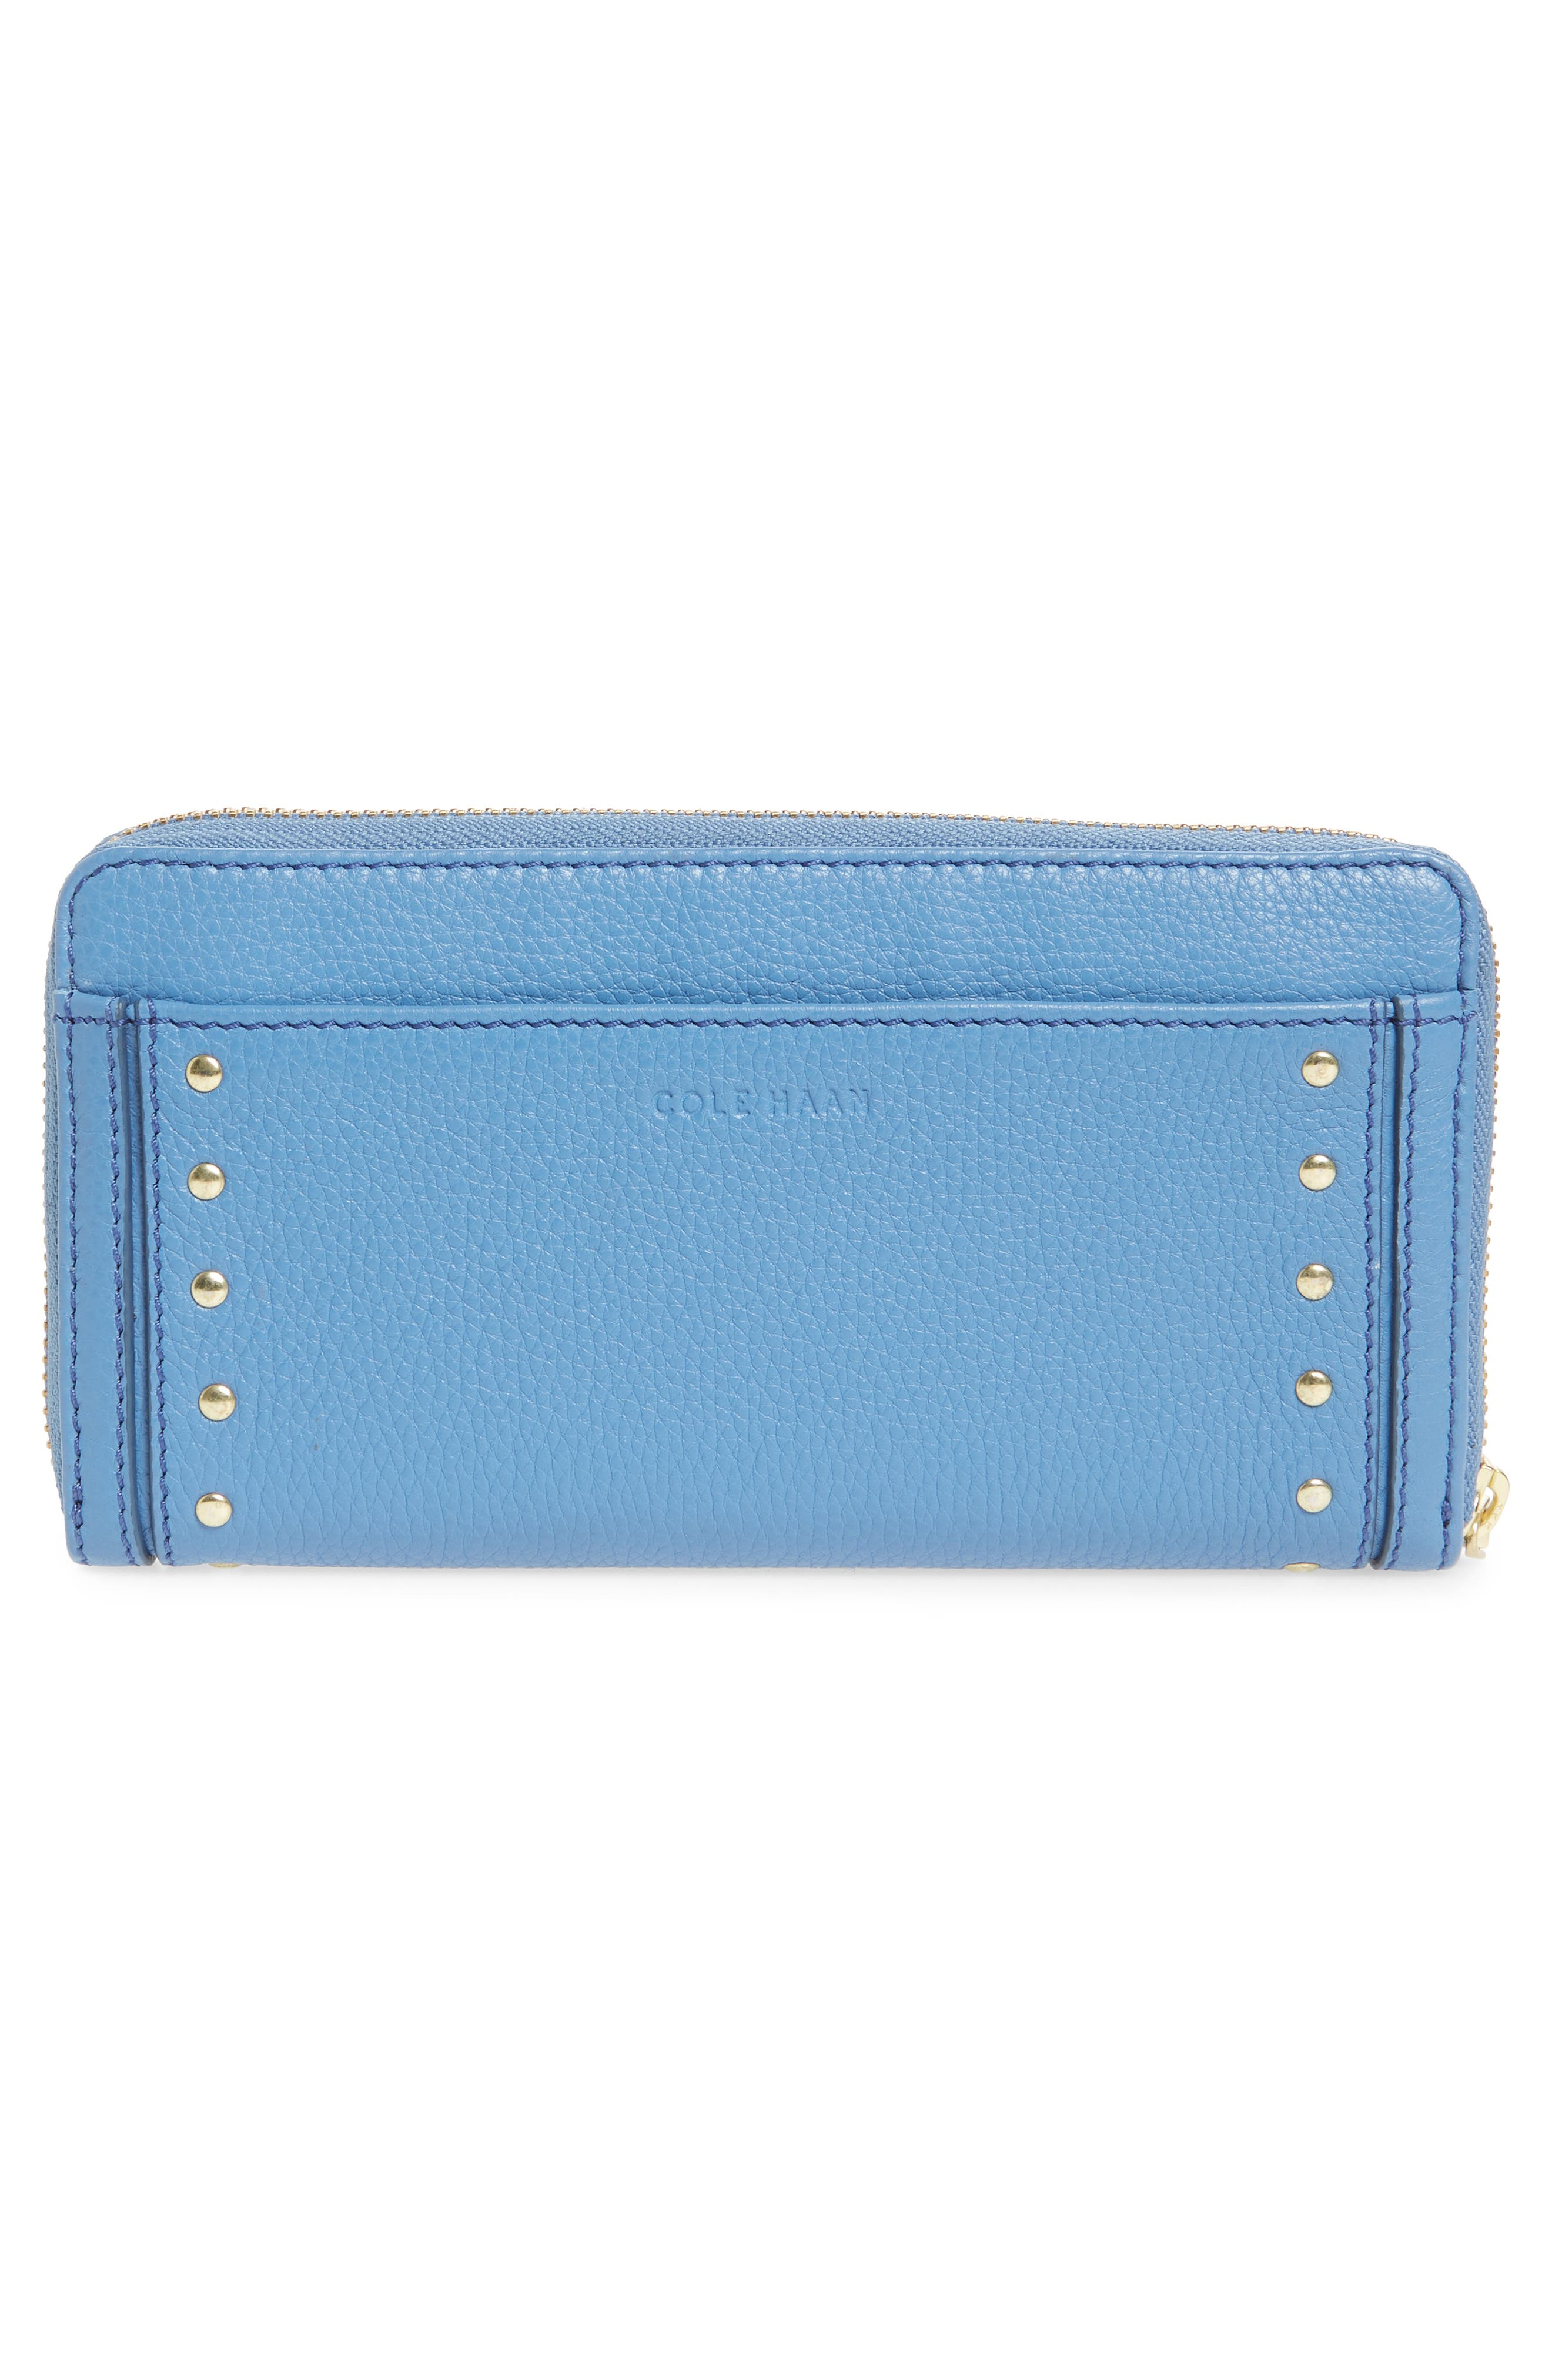 Cassidy Leather RFID Continental Zip Wallet,                             Alternate thumbnail 9, color,